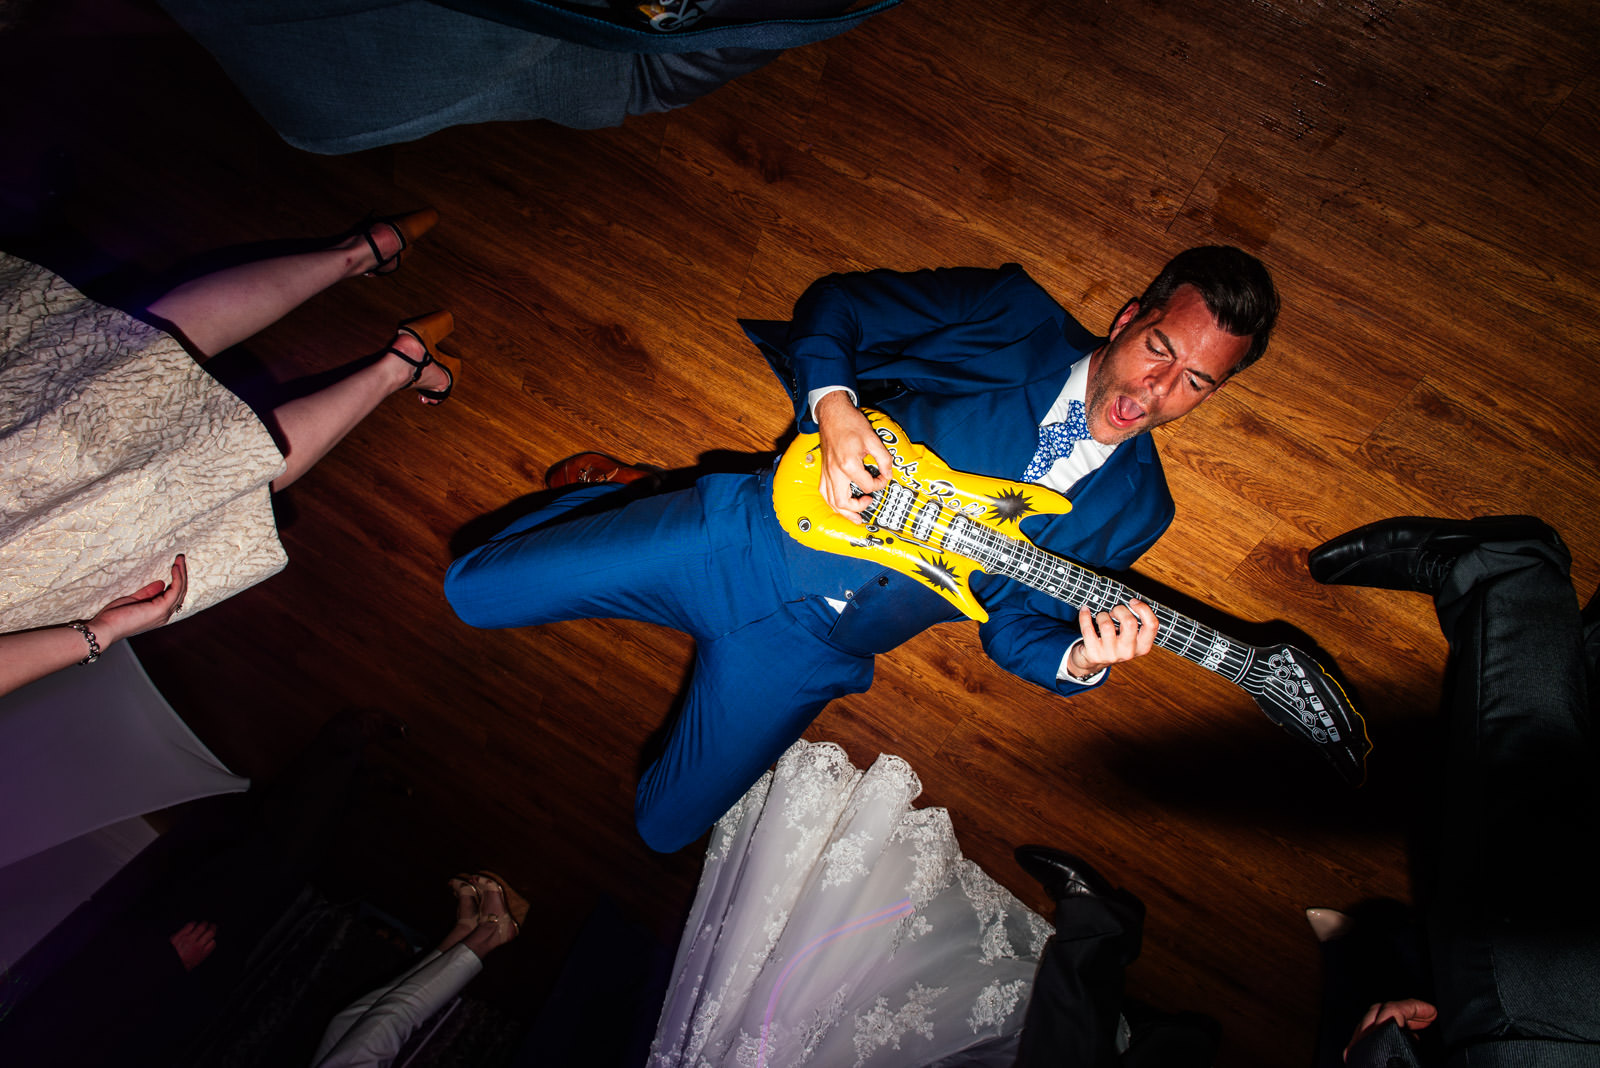 Guest on dance floor with inflatable guitar